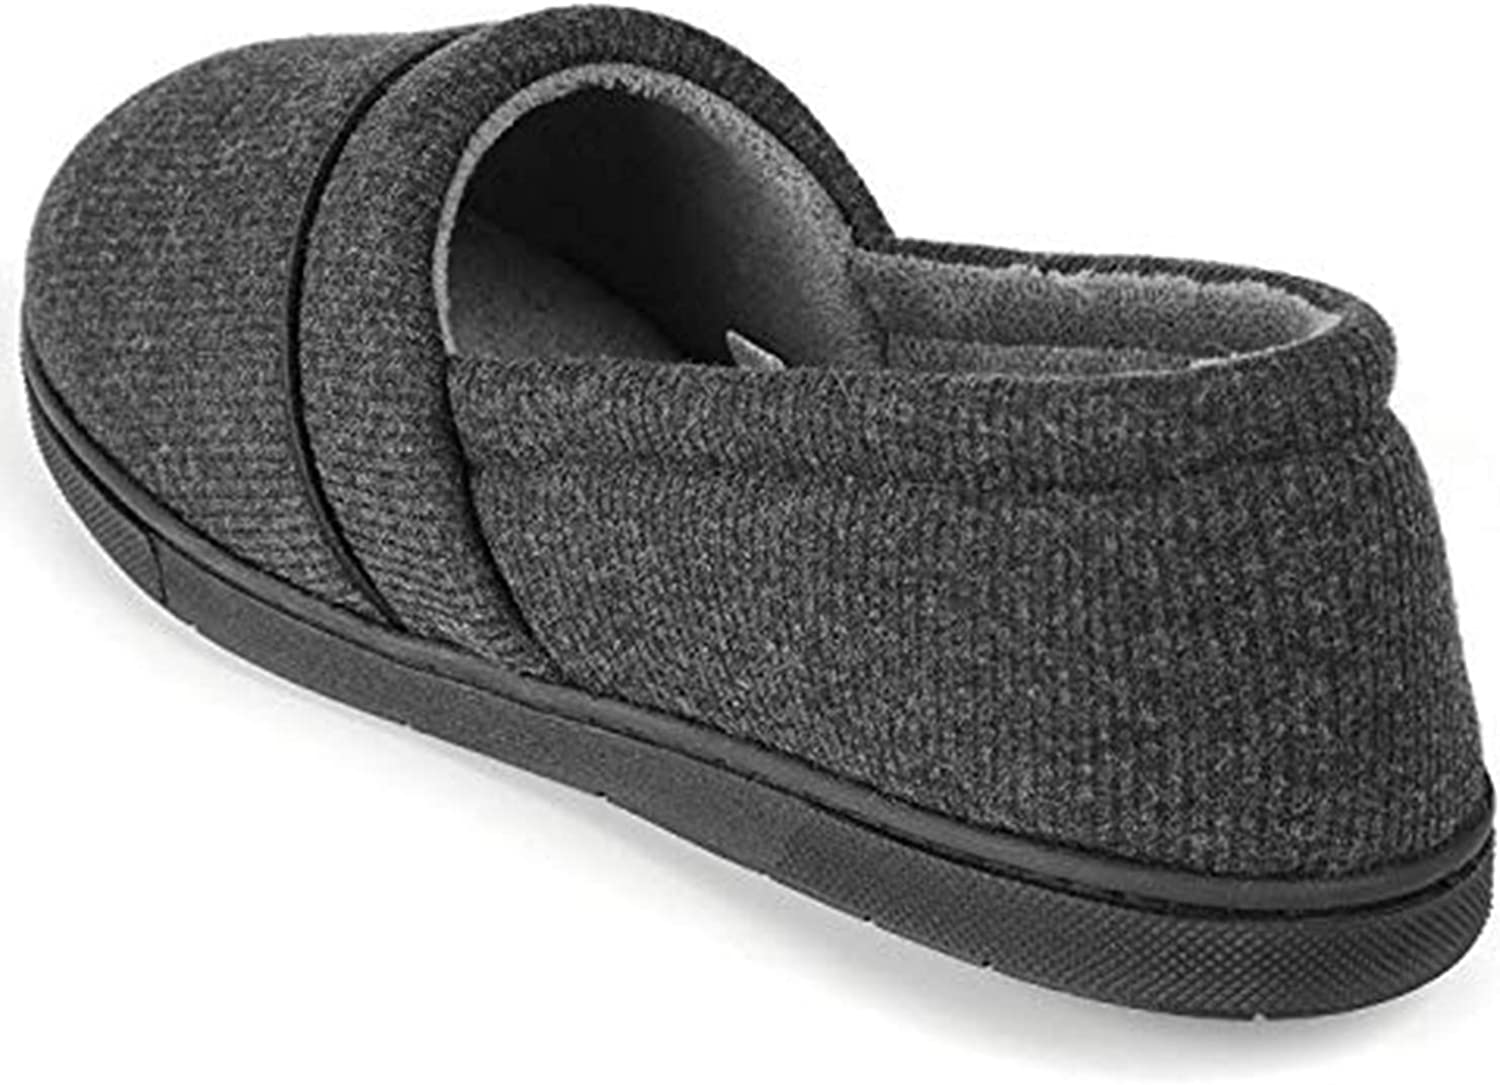 B07MZ4H3R4 ULTRAIDEAS Women\'s Comfy Memory Foam Cotton Knit Slippers, Ladies\' Plush Terry Lining Loafer Lightweight House Shoes with Indoor Outdoor Anti-Skid Rubber Sole 71cXcssxshL